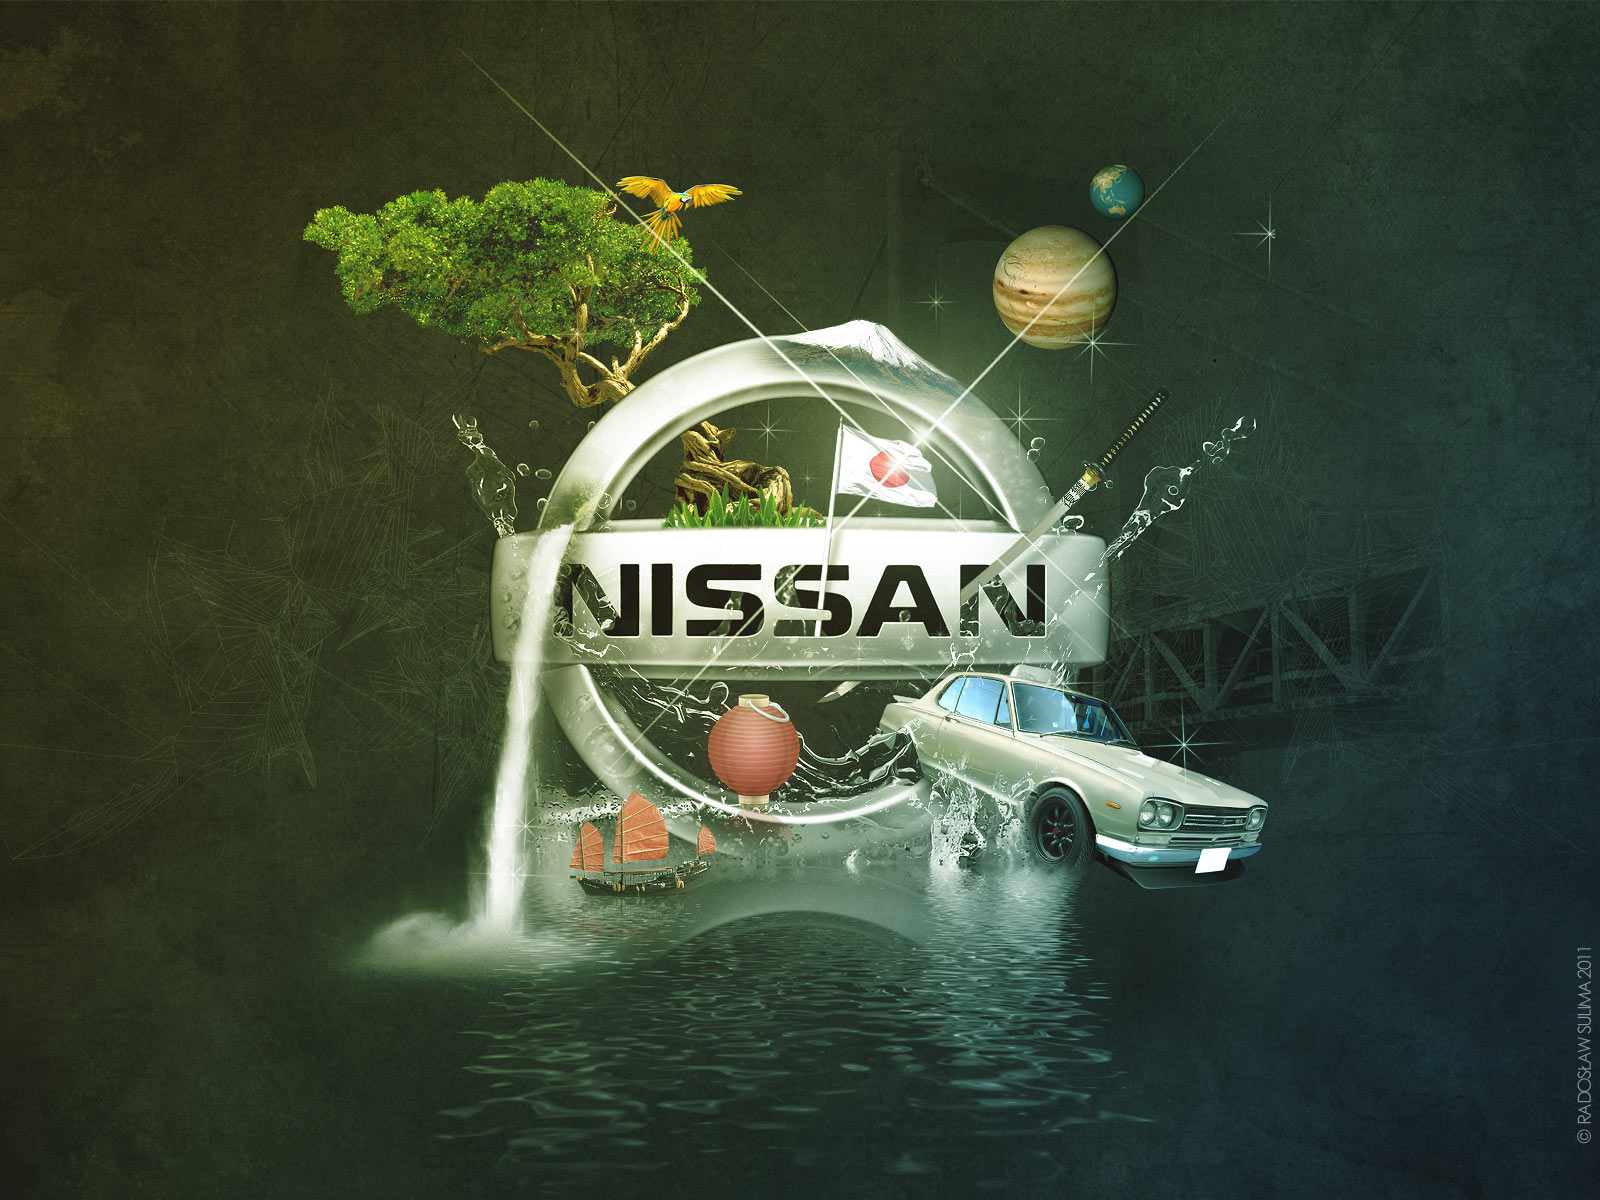 nissan Wallpaper and Background 1600x1200 ID499293